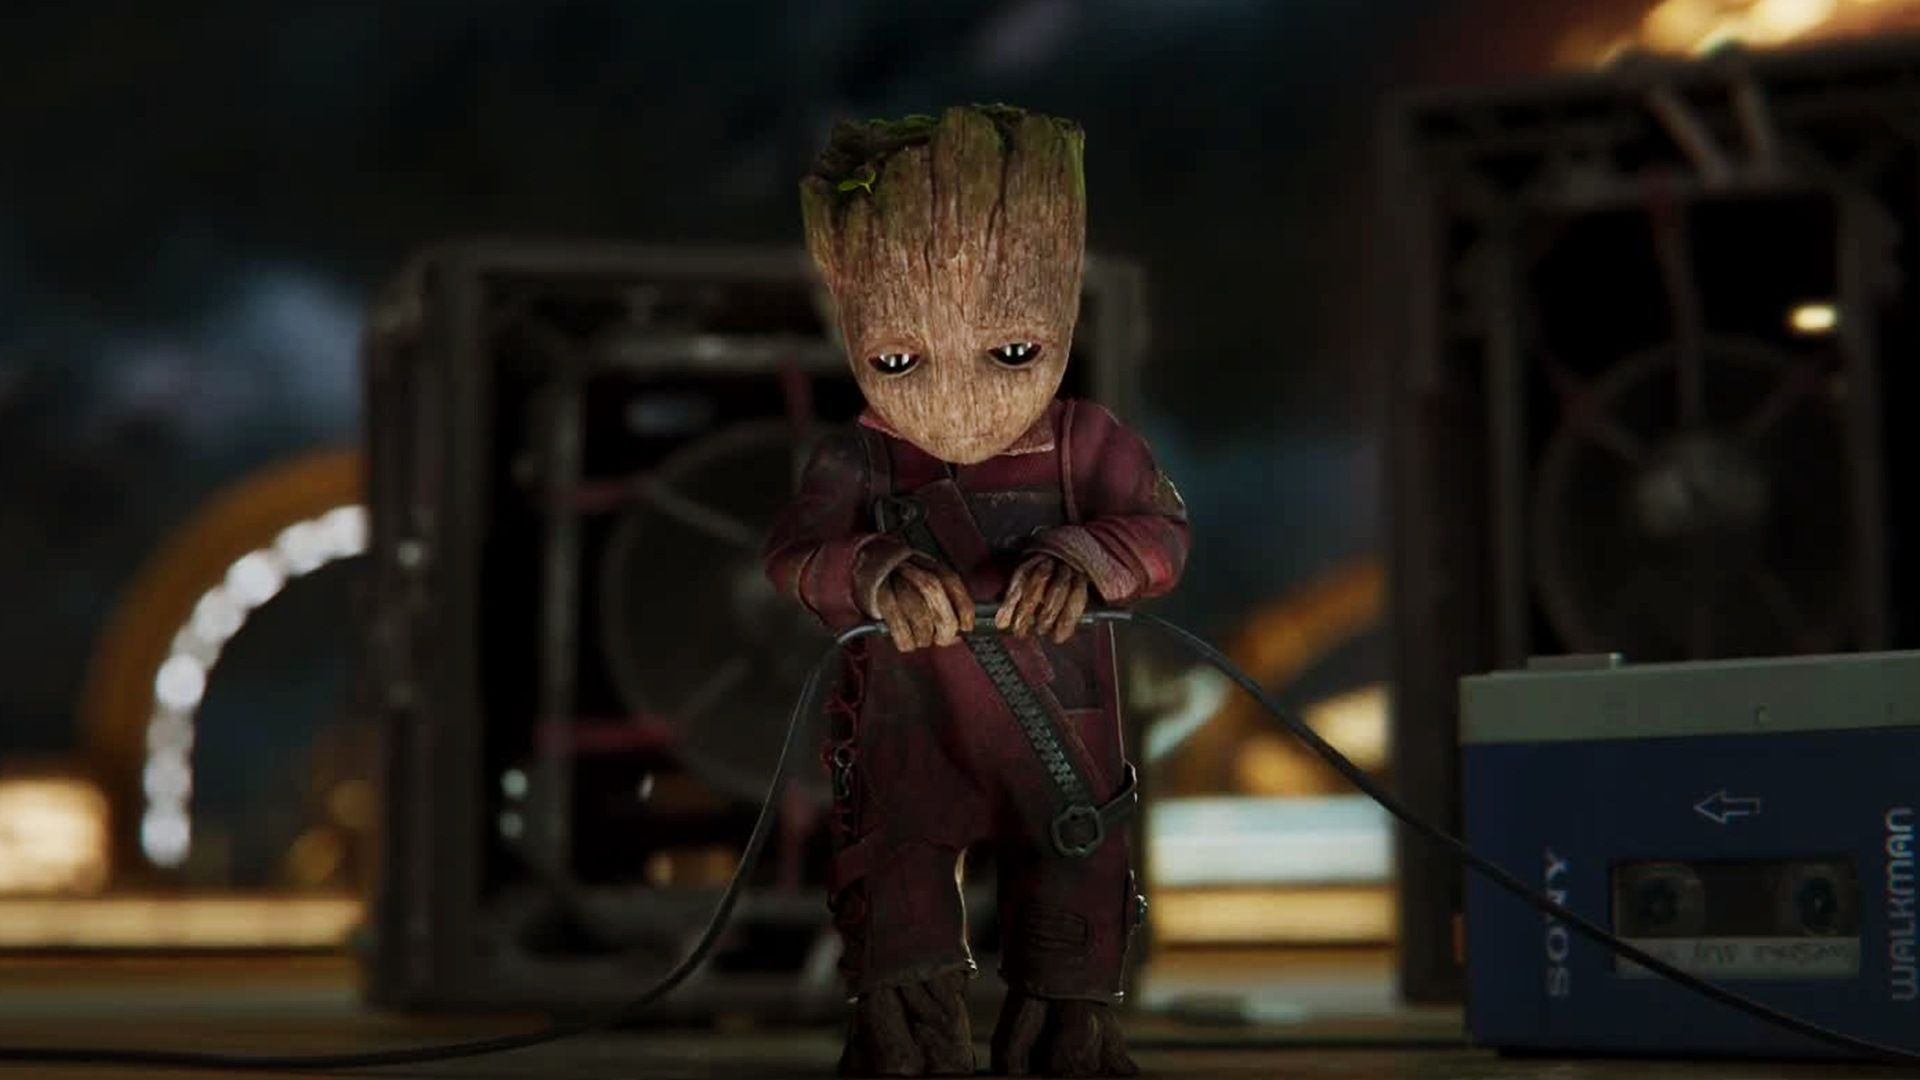 download baby groot wallpaper hd icon wallpaper hd | wallpapers for